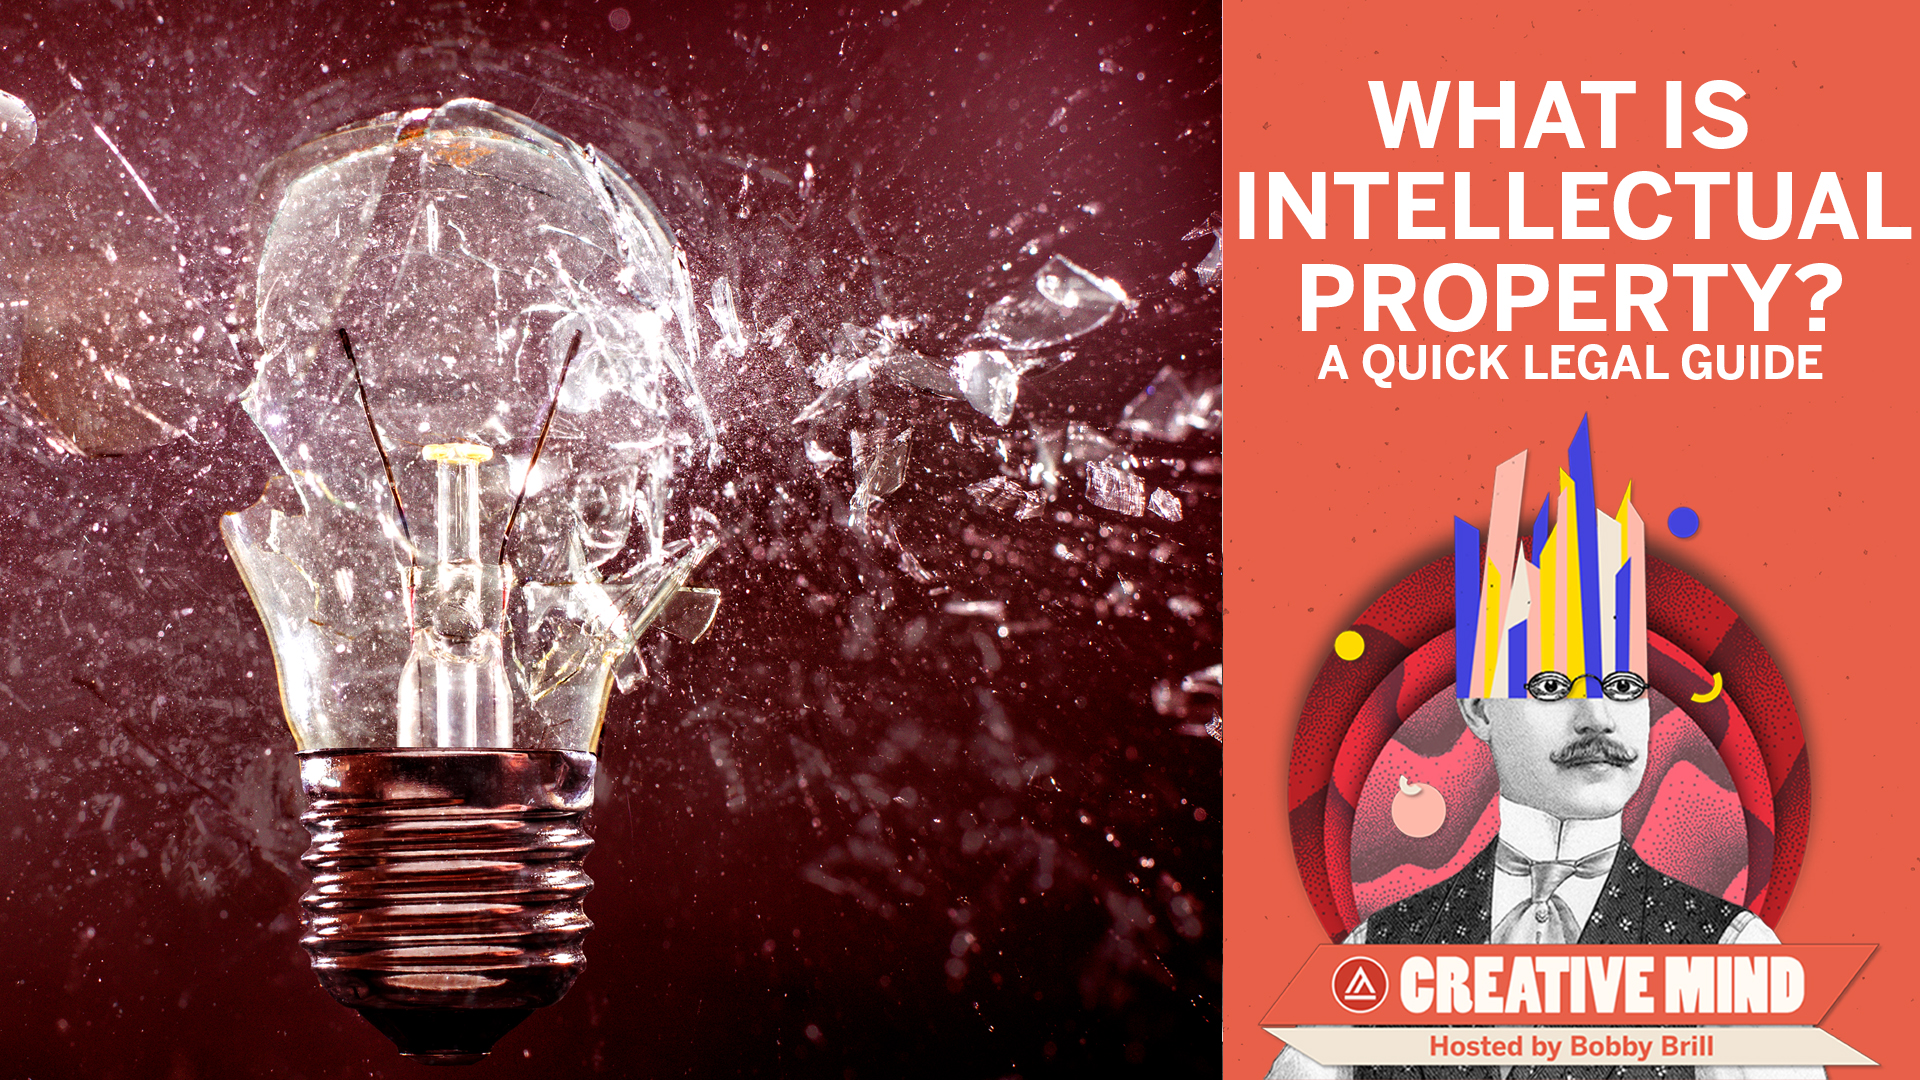 What is Intellectual Property 16x9